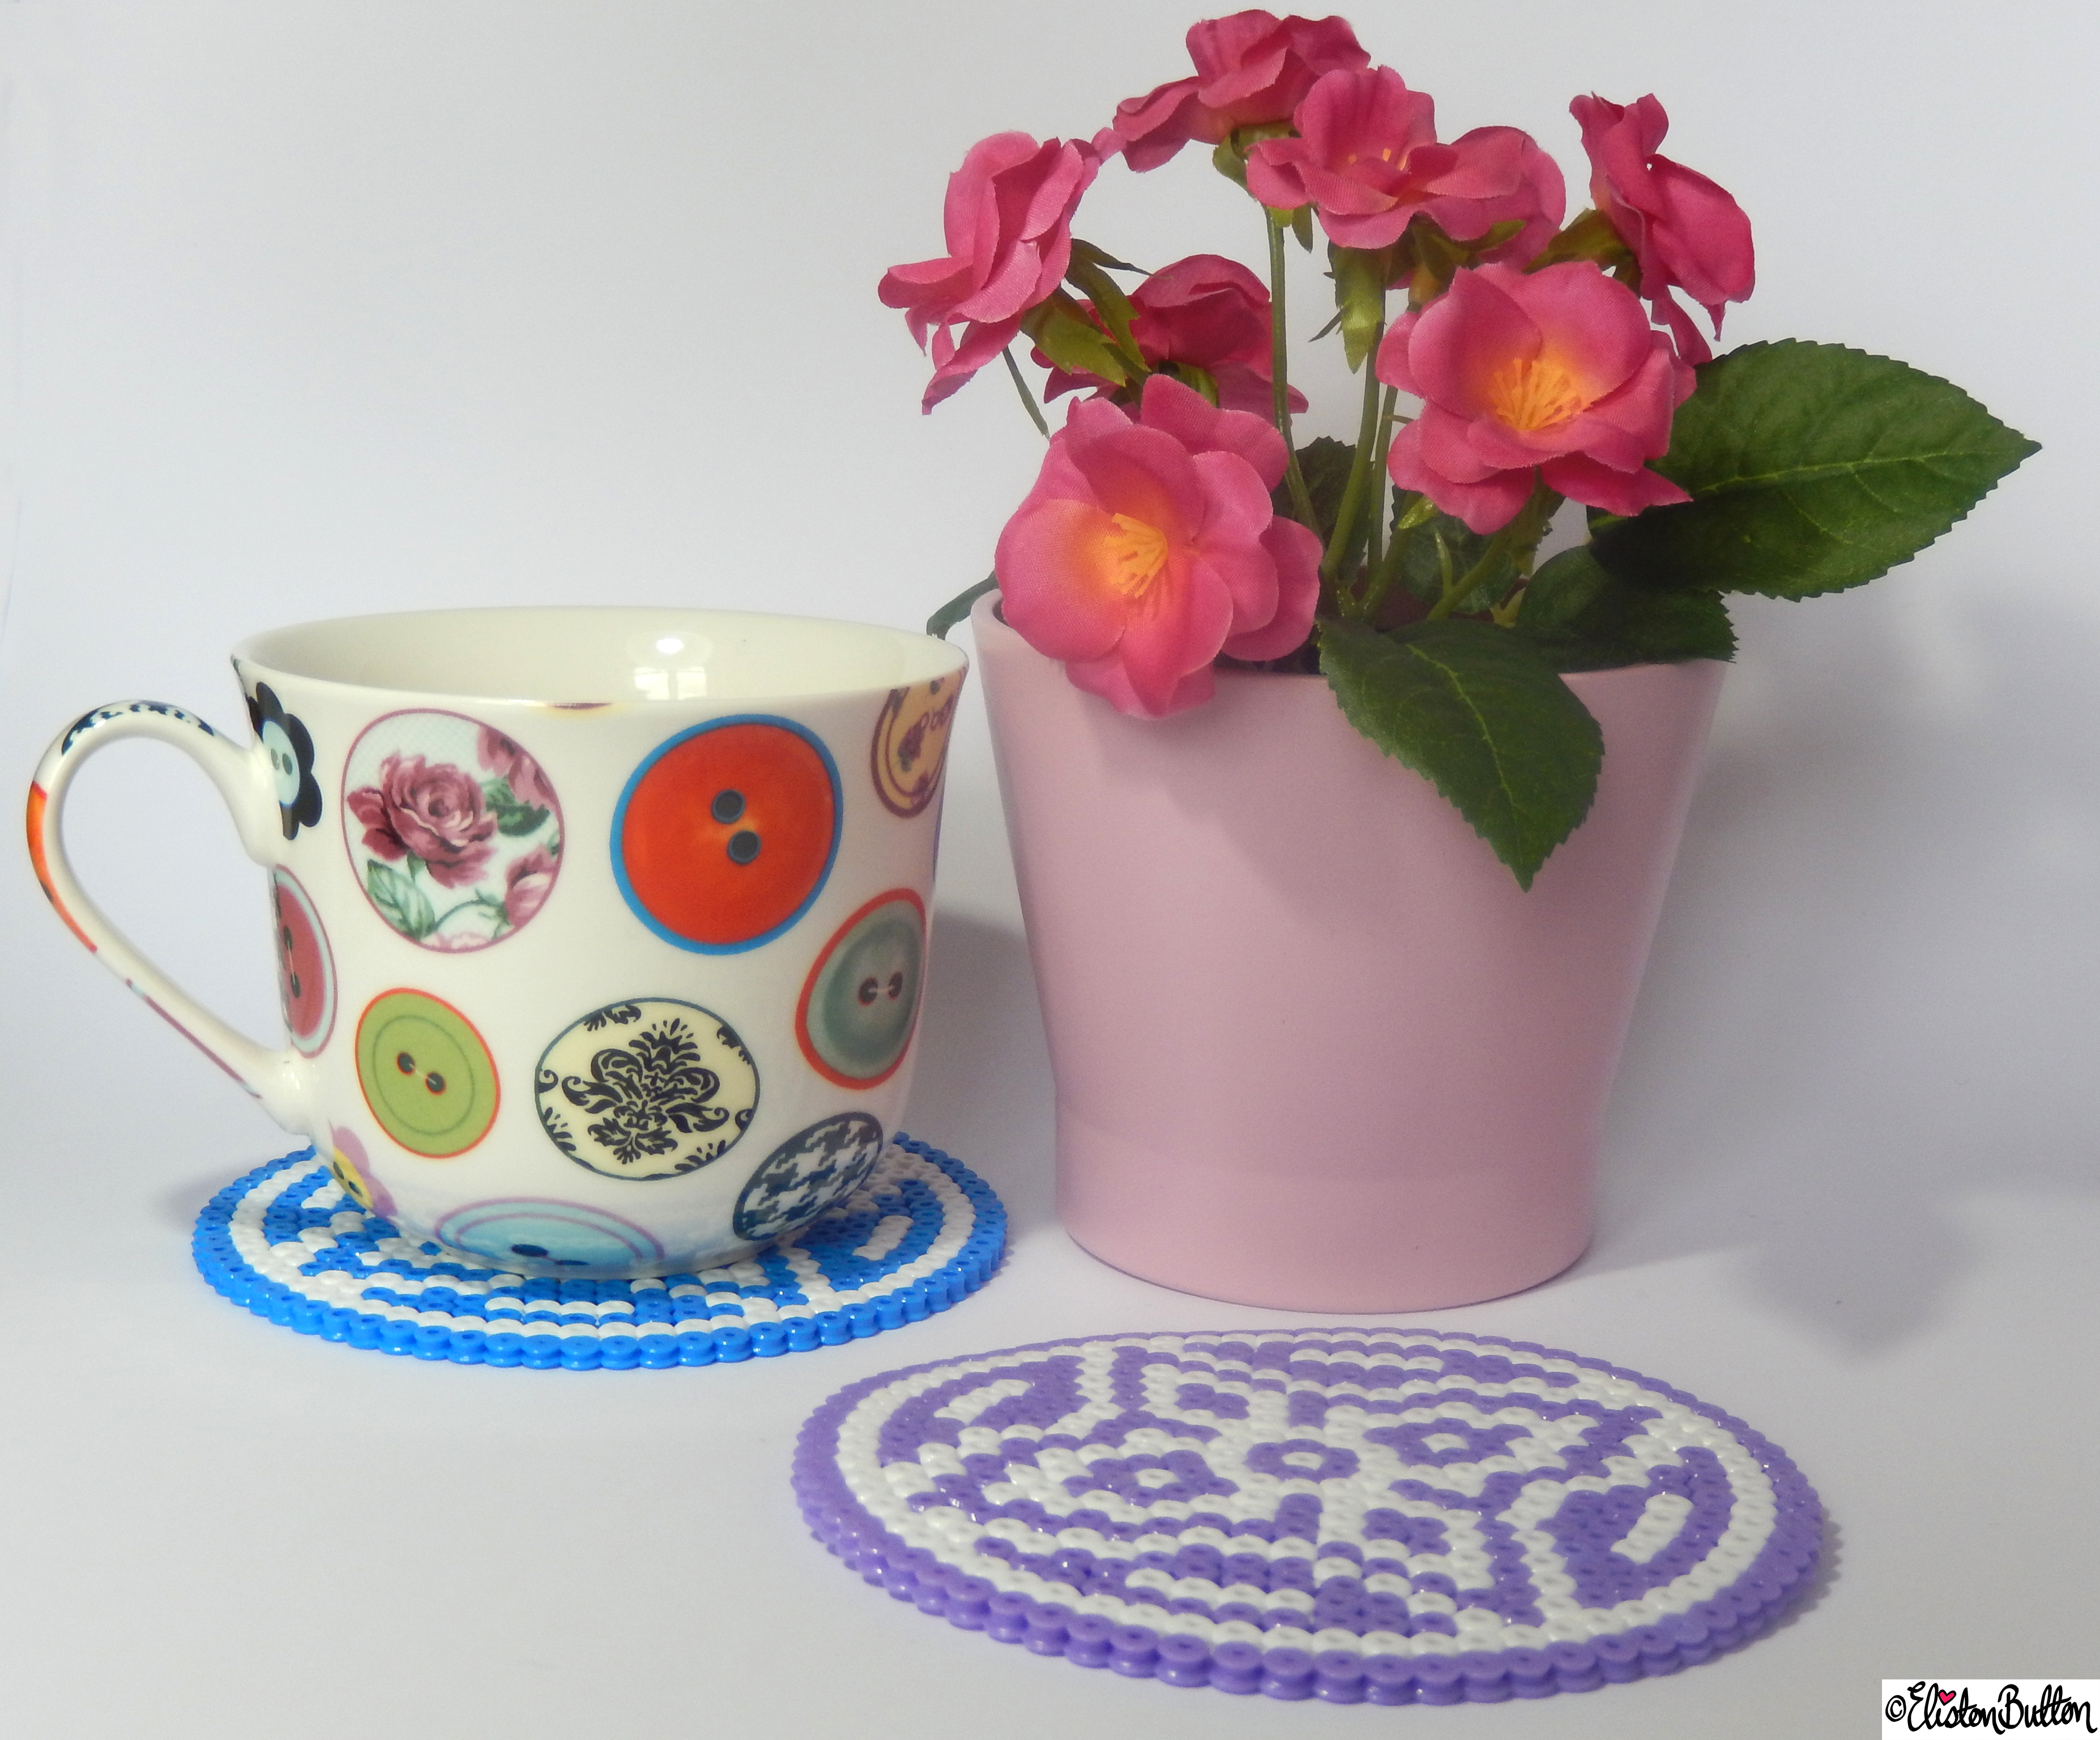 Large Picture and Hama Bead Patterned Coasters in Use with Tea Cup and Flower - Create 28 - No. 9&10 - Picture Bead Coasters at www.elistonbutton.com - Eliston Button - That Crafty Kid – Art, Design, Craft & Adventure.